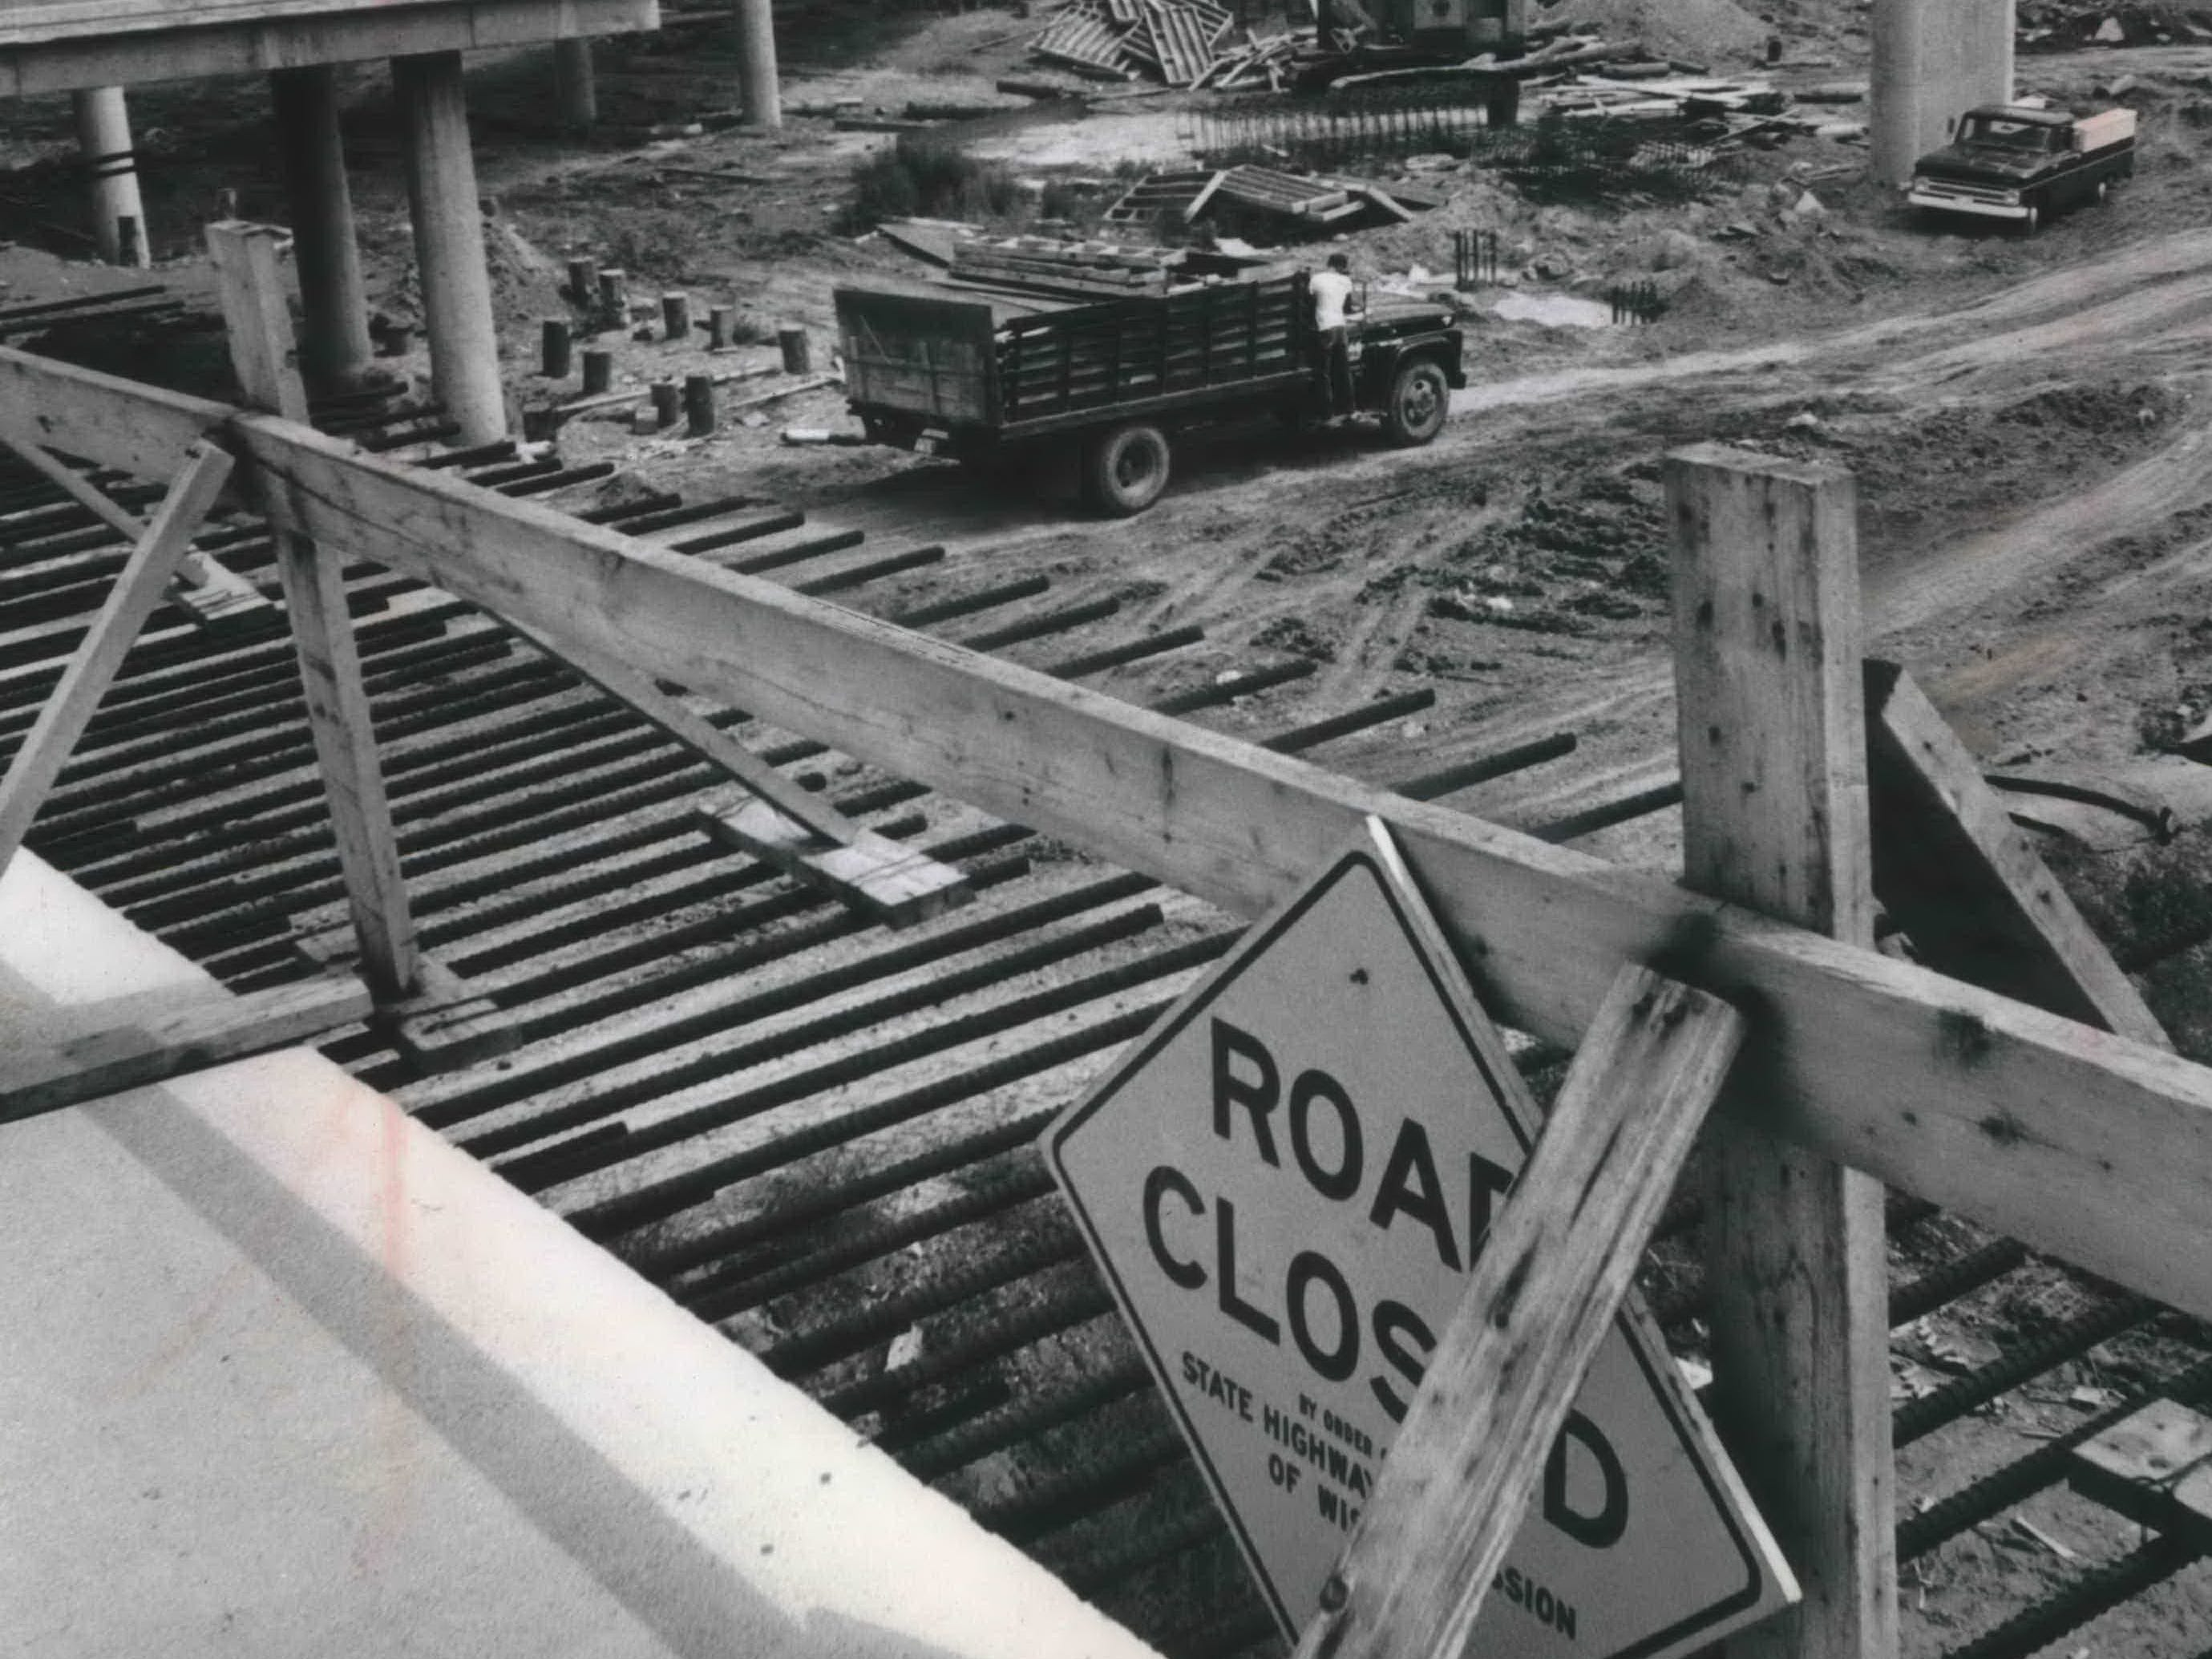 A highway sign, possibly posted as a prank, decorates a barricade blocking the end of one of the still-under-construction ramps to the Central Interchange in downtown Milwaukee.  This photo was published in the Aug. 5, 1965, Milwaukee Journal.